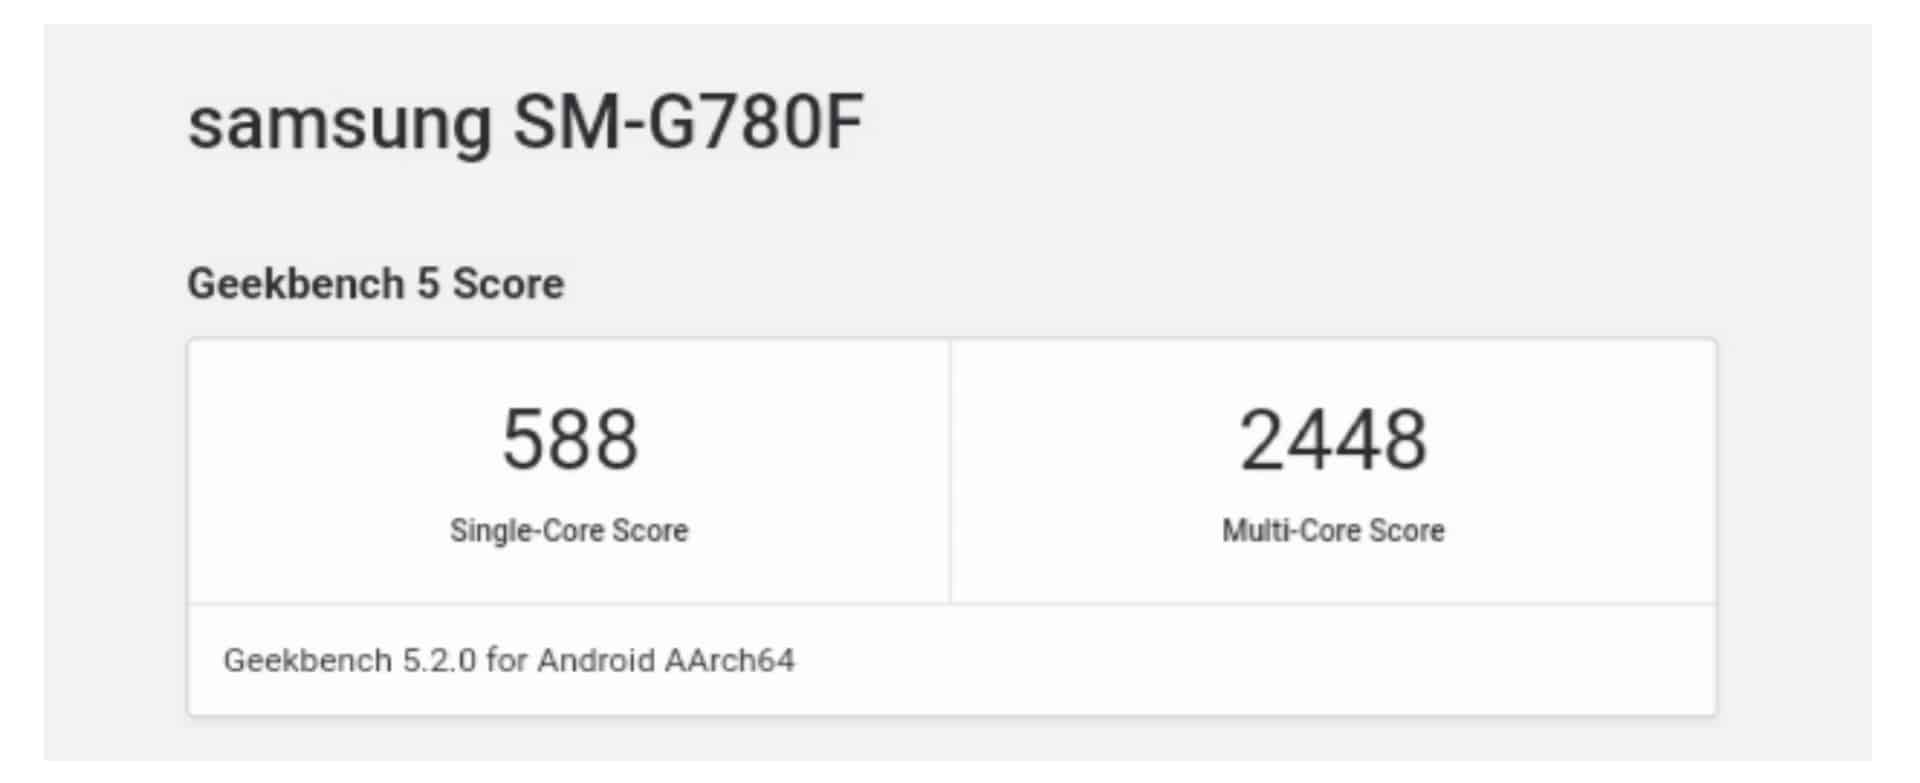 Samsung Galaxy S20 Fan Edition Geekbench Score